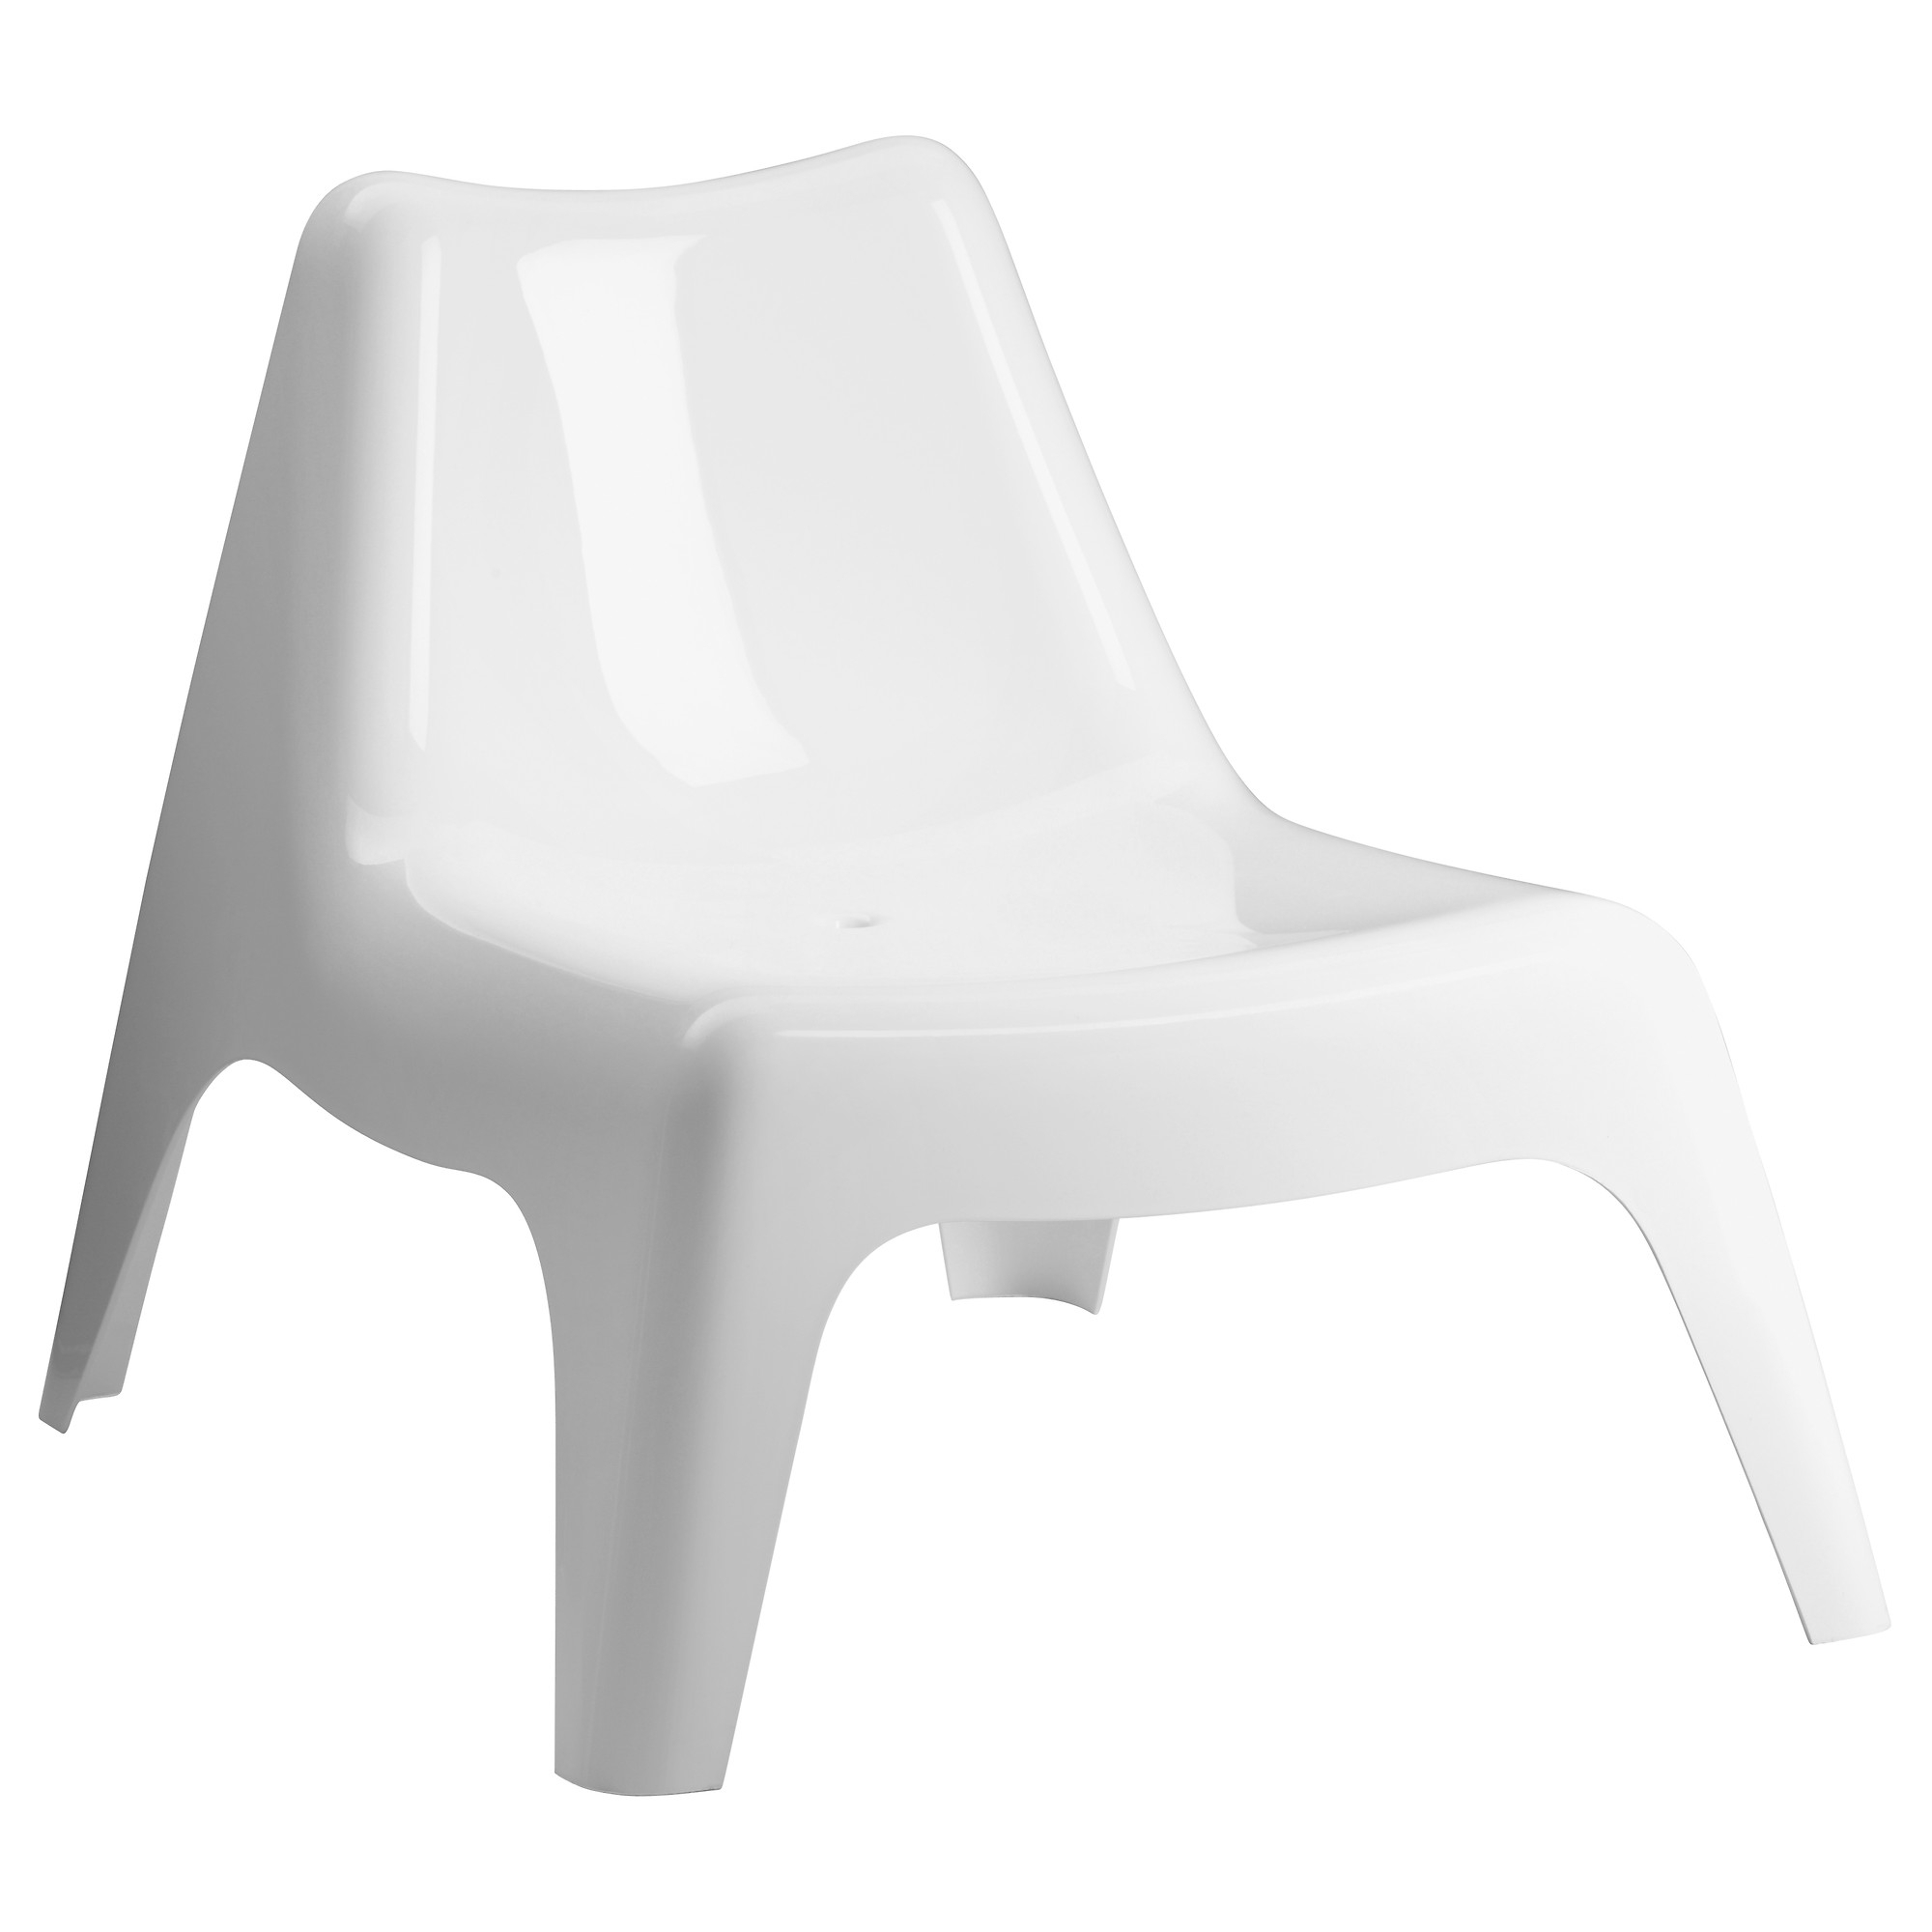 Outdoor Ikea Chaise Lounge Chairs Inside Most Popular Ikea Ps Vågö Chair, Outdoor – White – Ikea (View 9 of 15)